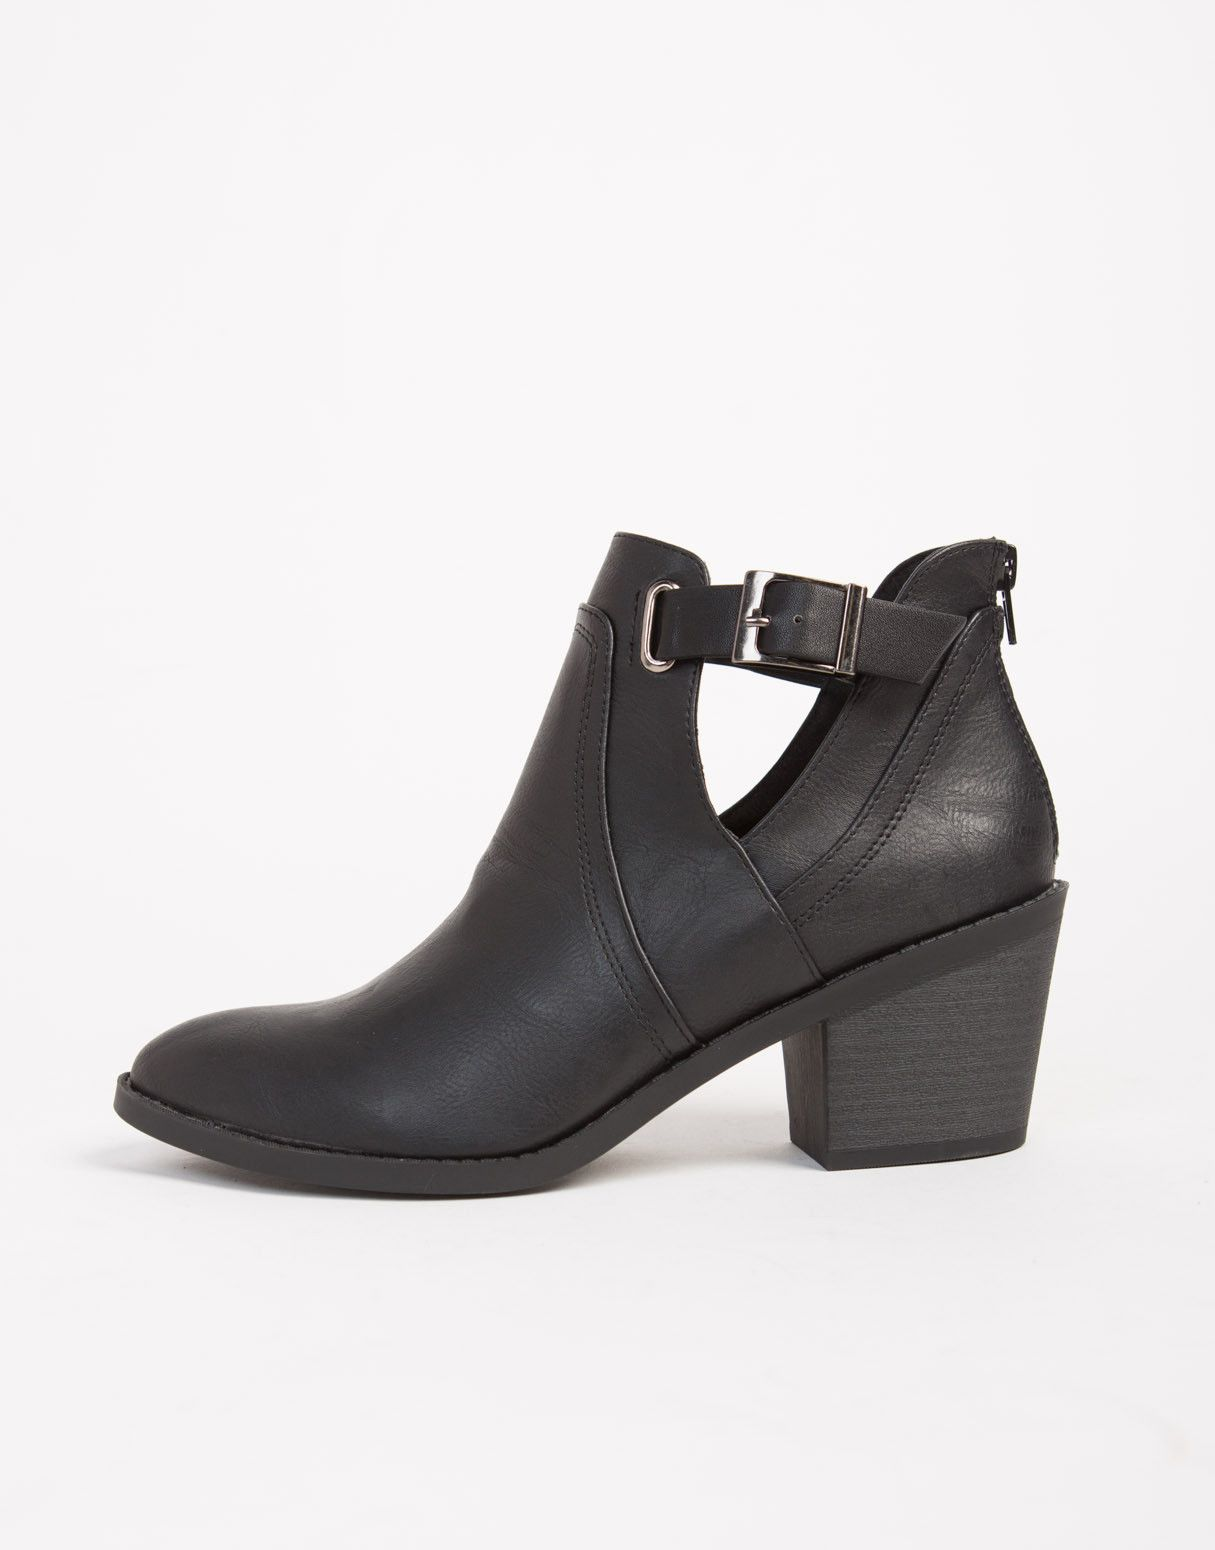 5f92b167c543 Side Slit Buckled Ankle Boots size 6